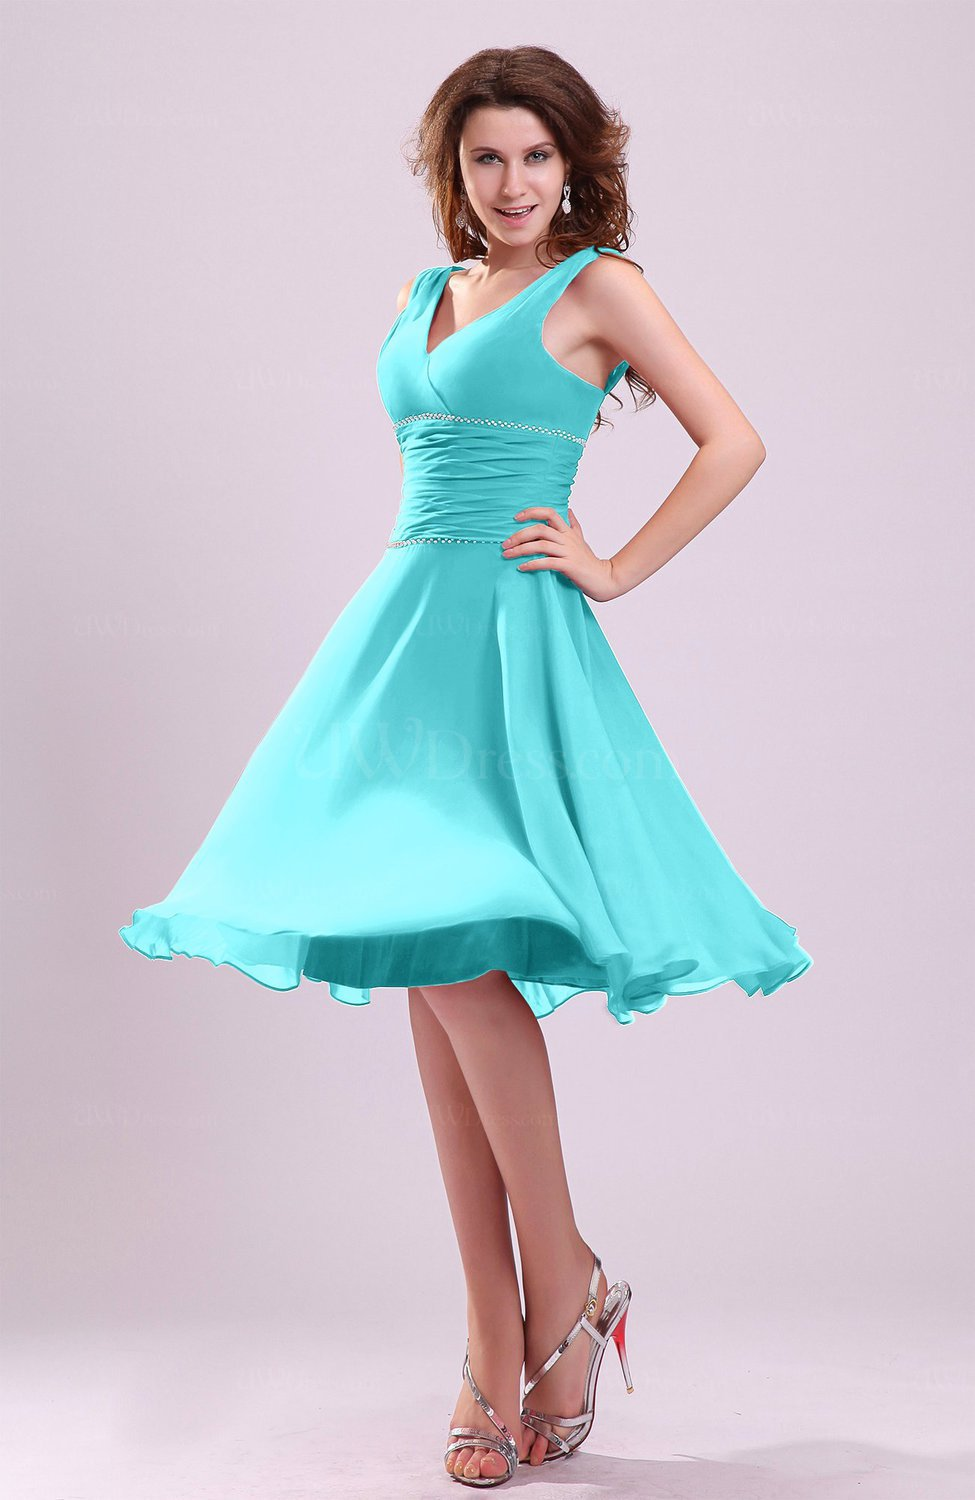 5d19af8796c7 Turquoise Cute A-line Sleeveless Chiffon Knee Length Ruching Bridesmaid  Dresses (Style D41368)